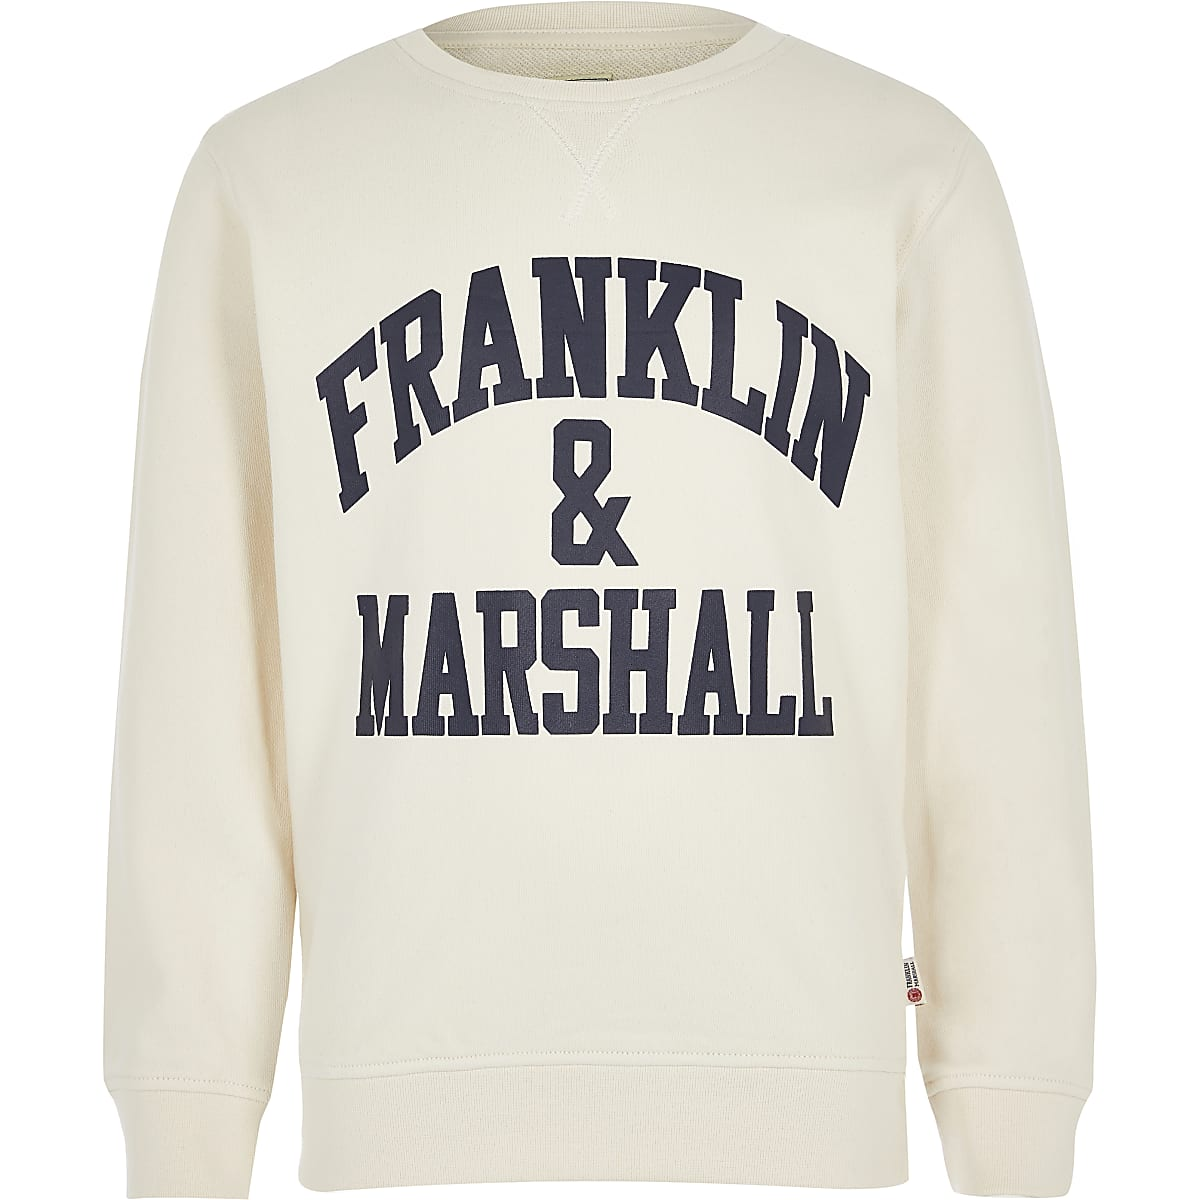 Boys Franklin & Marshall white sweatshirt